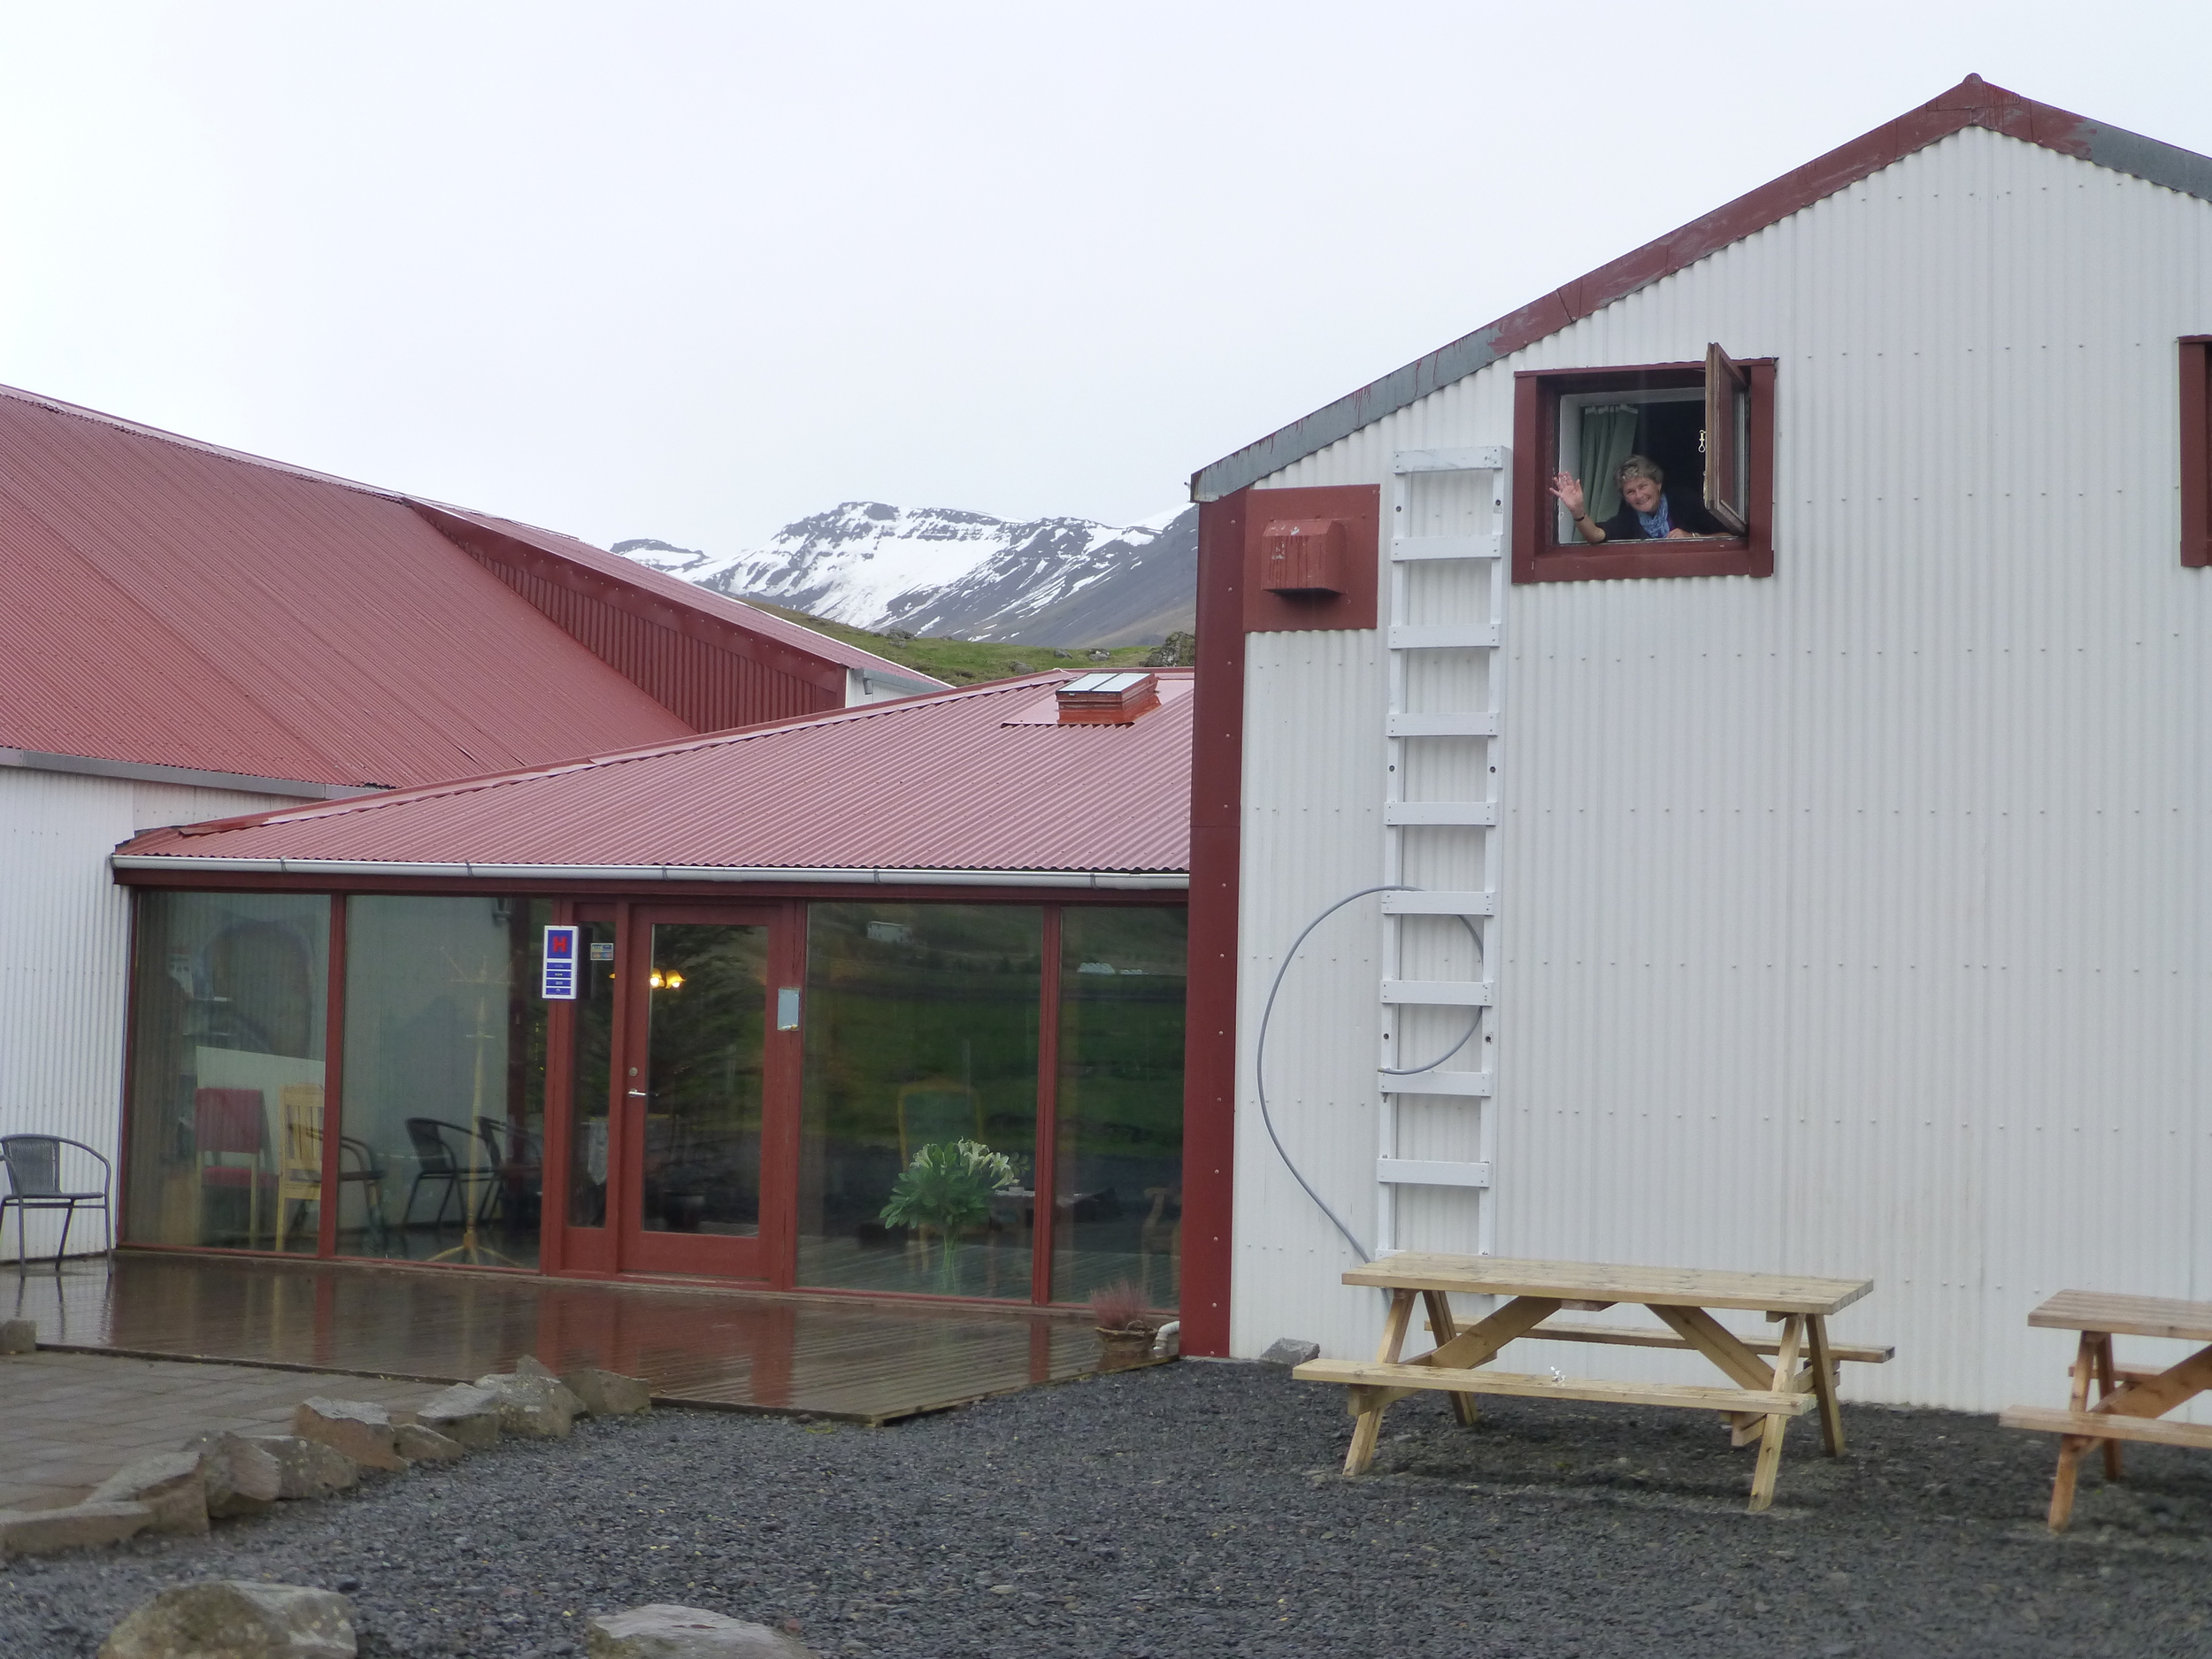 our accommodation first night out of reykjavik